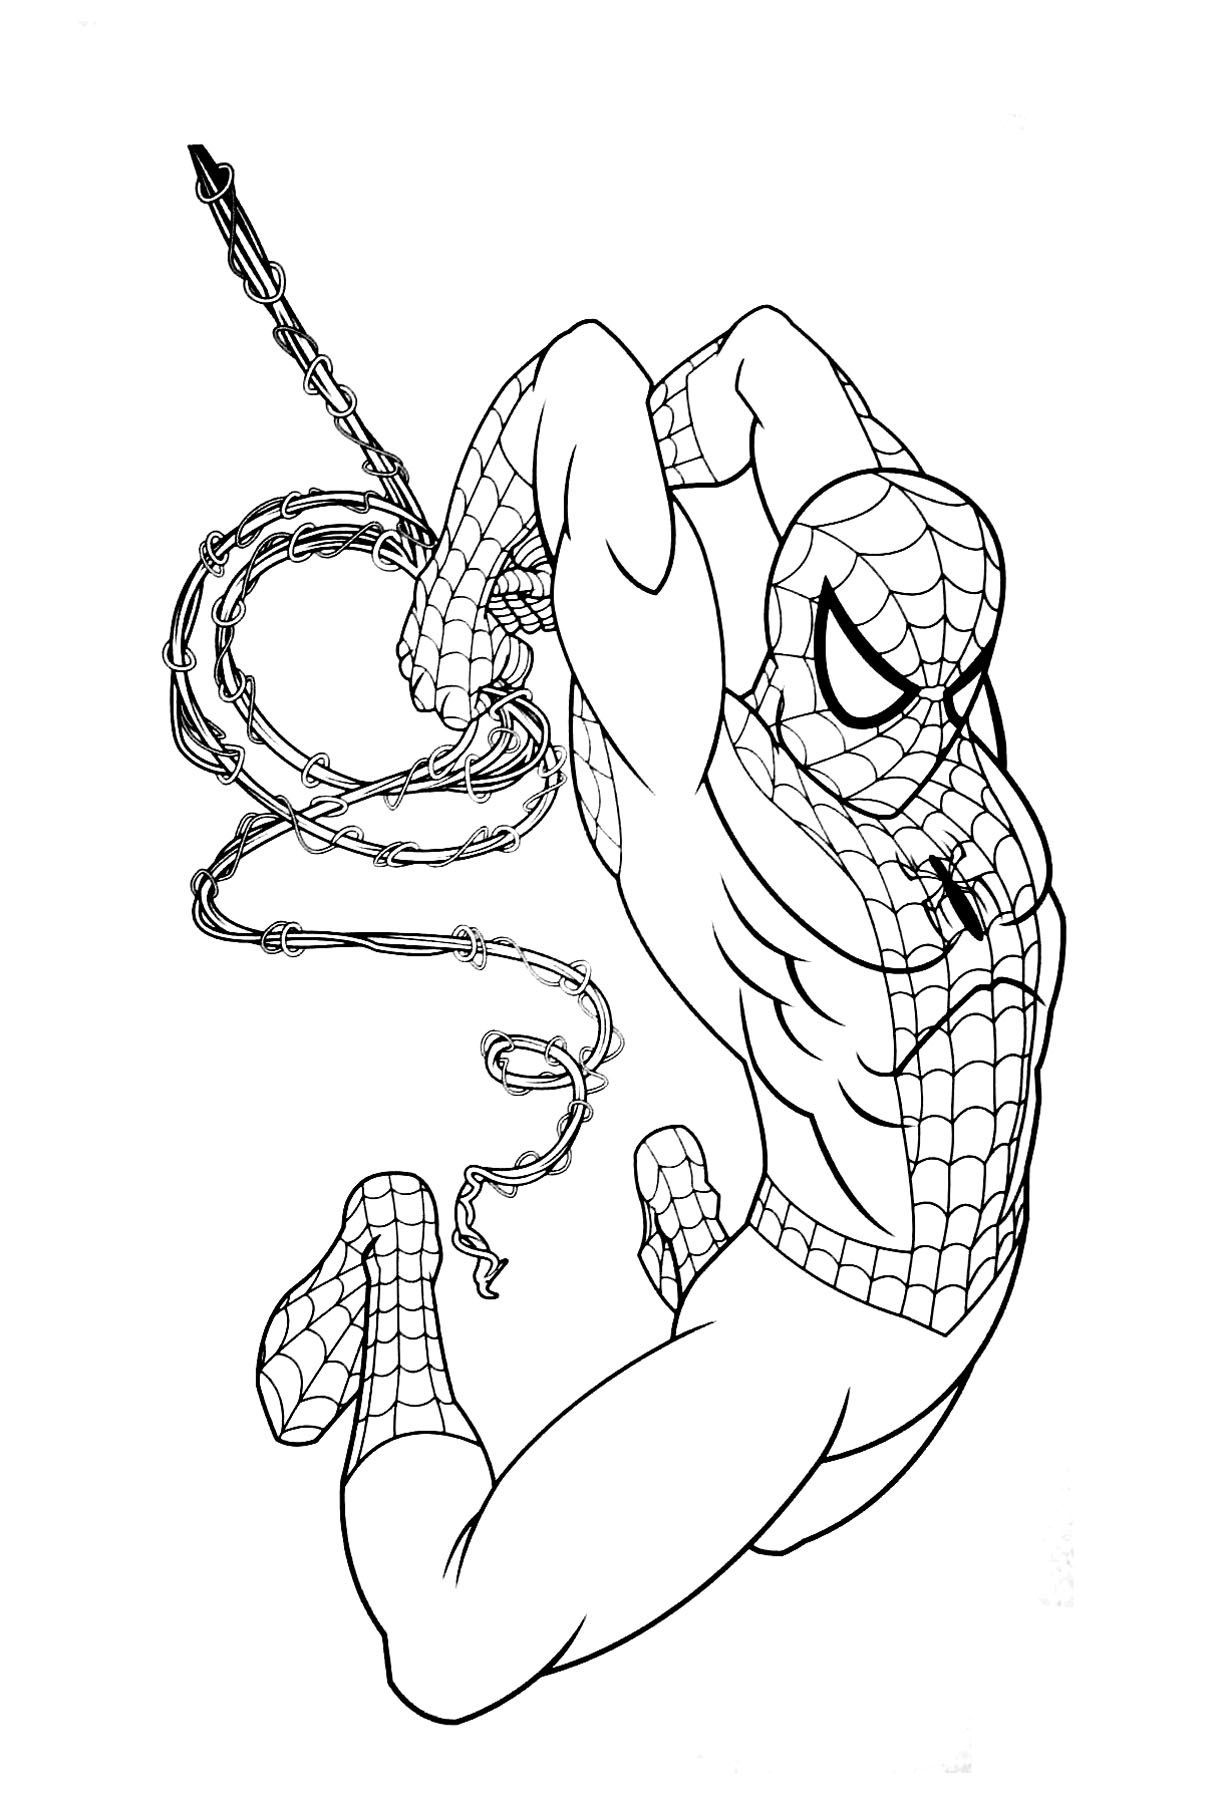 Spiderman Far From Home Coloring Pages Superhelden Malvorlagen Malvorlagen Tiere Malvorlage Einhorn